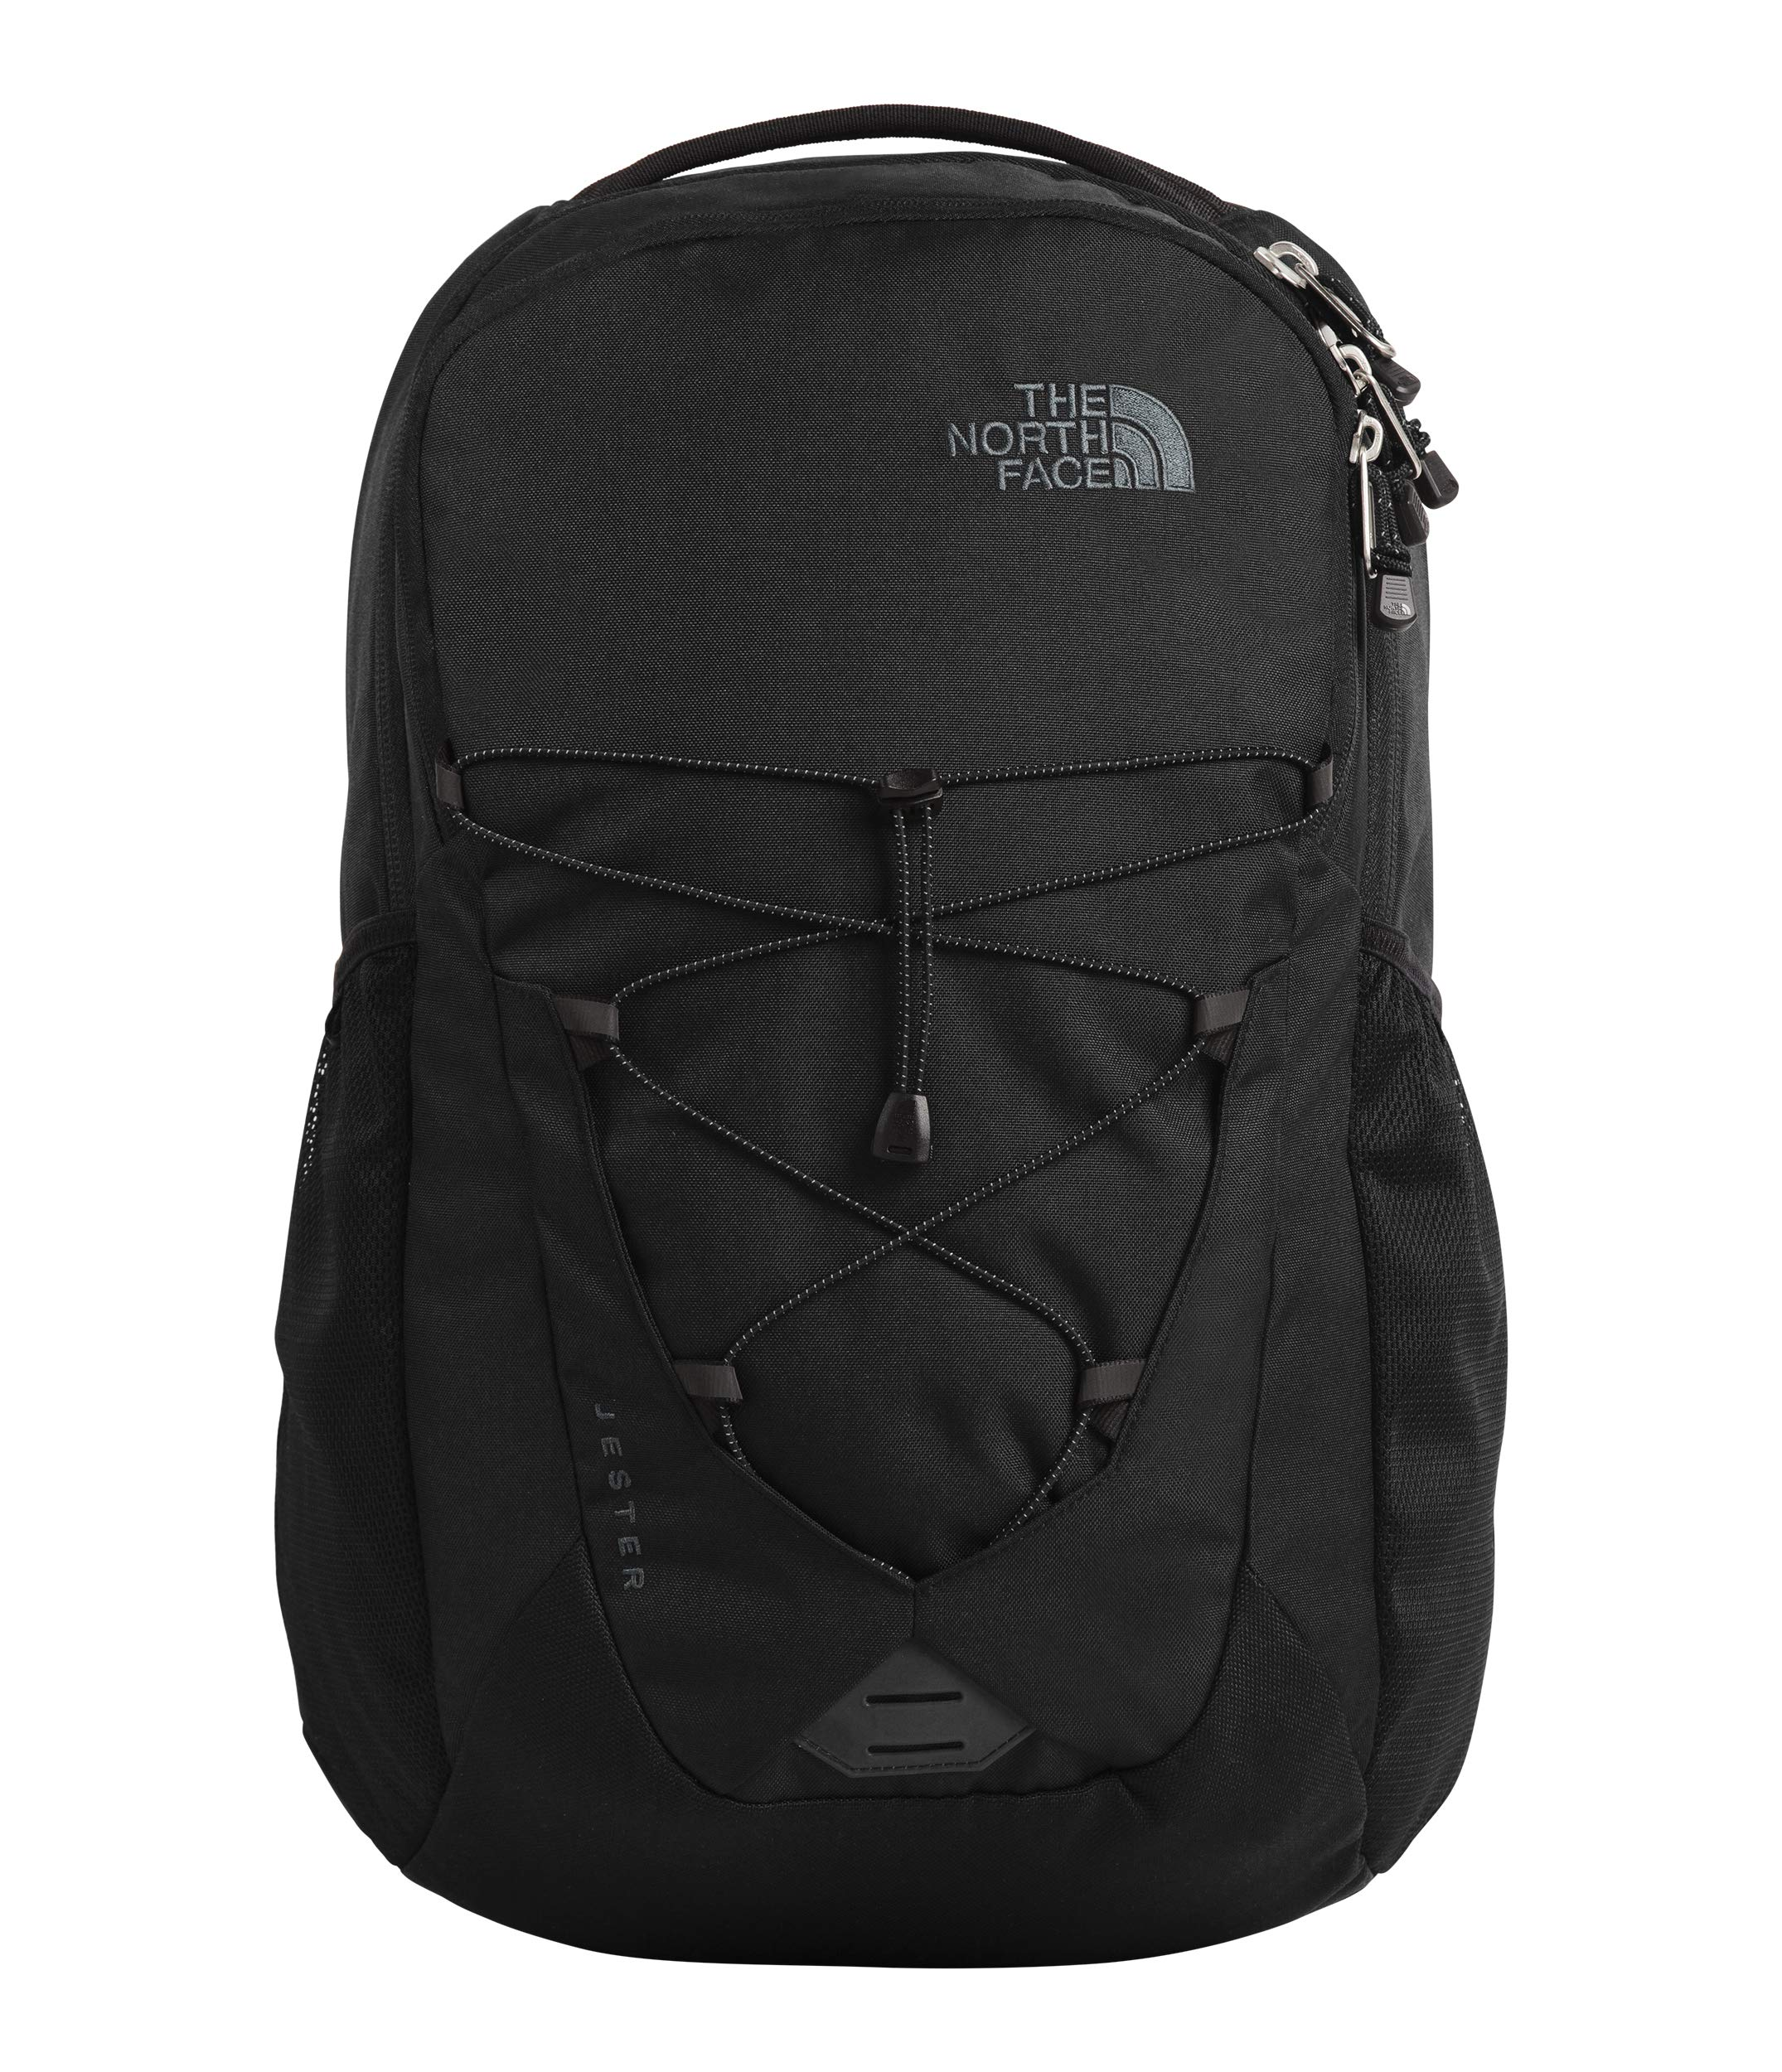 The North Face Jester Backpack, TNF Black/Silver Reflective by The North Face